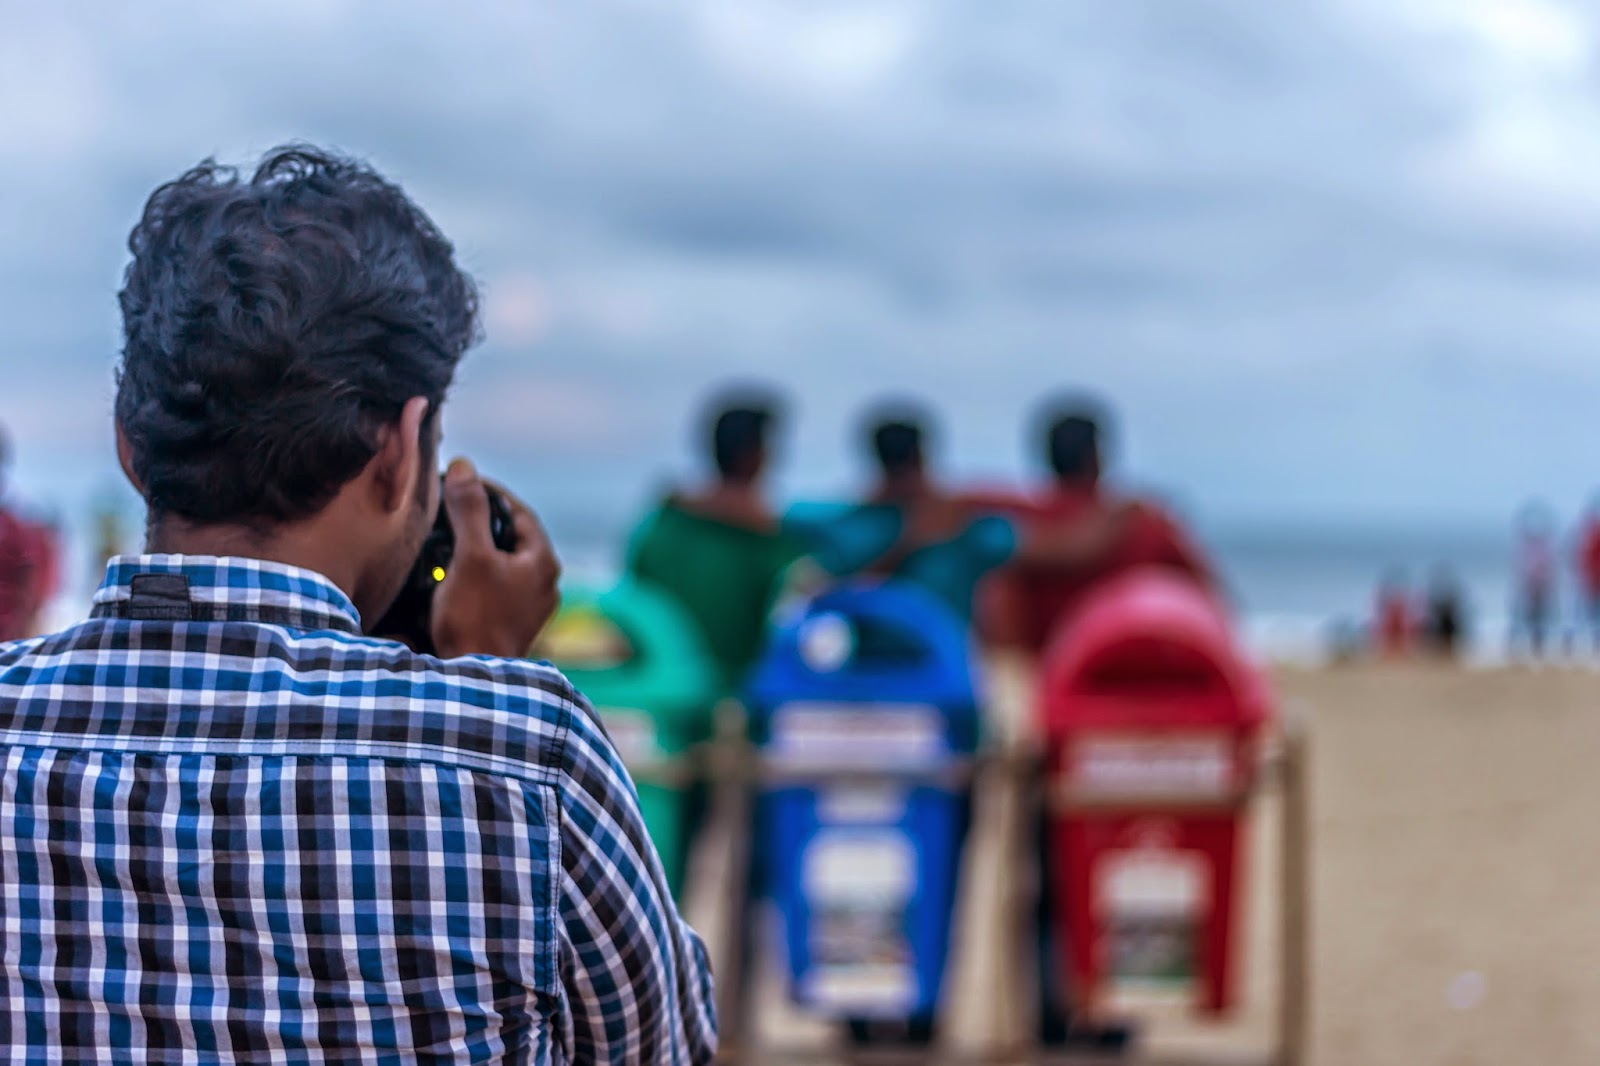 Photo of a photographer taking picture of three guys standing behind three dustbins in a public beach